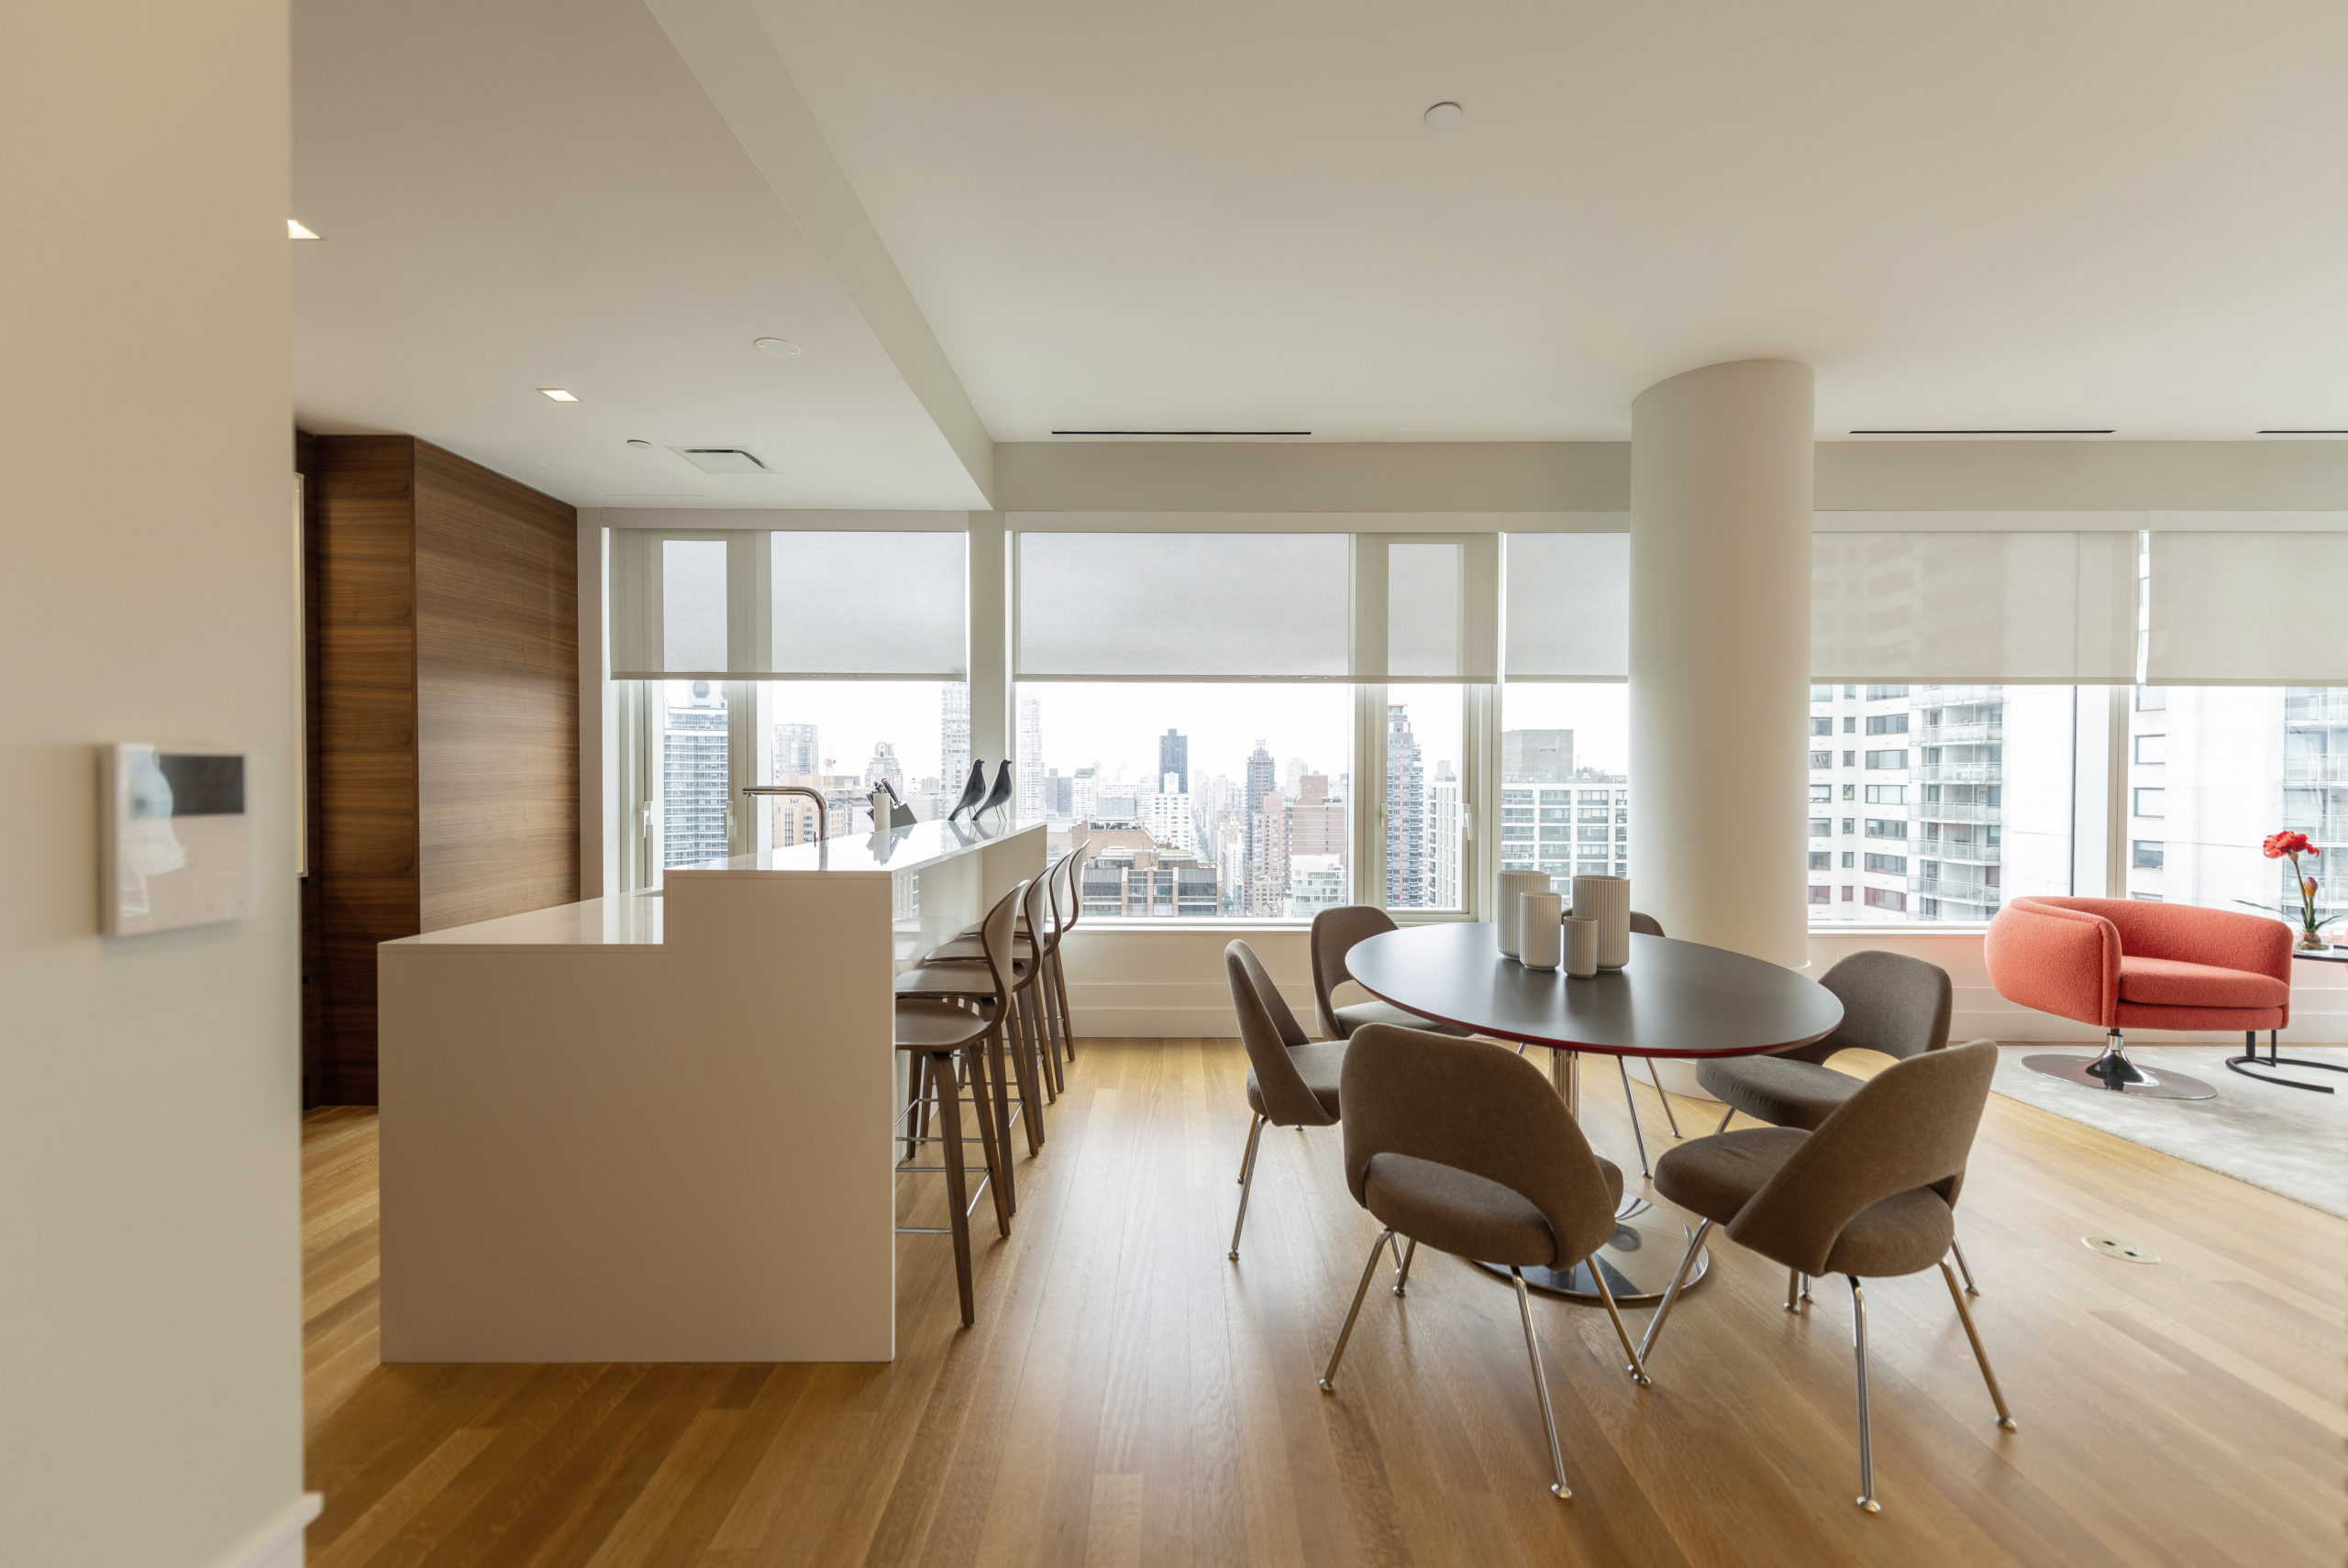 Designer living space in New York City by EXD Architecture